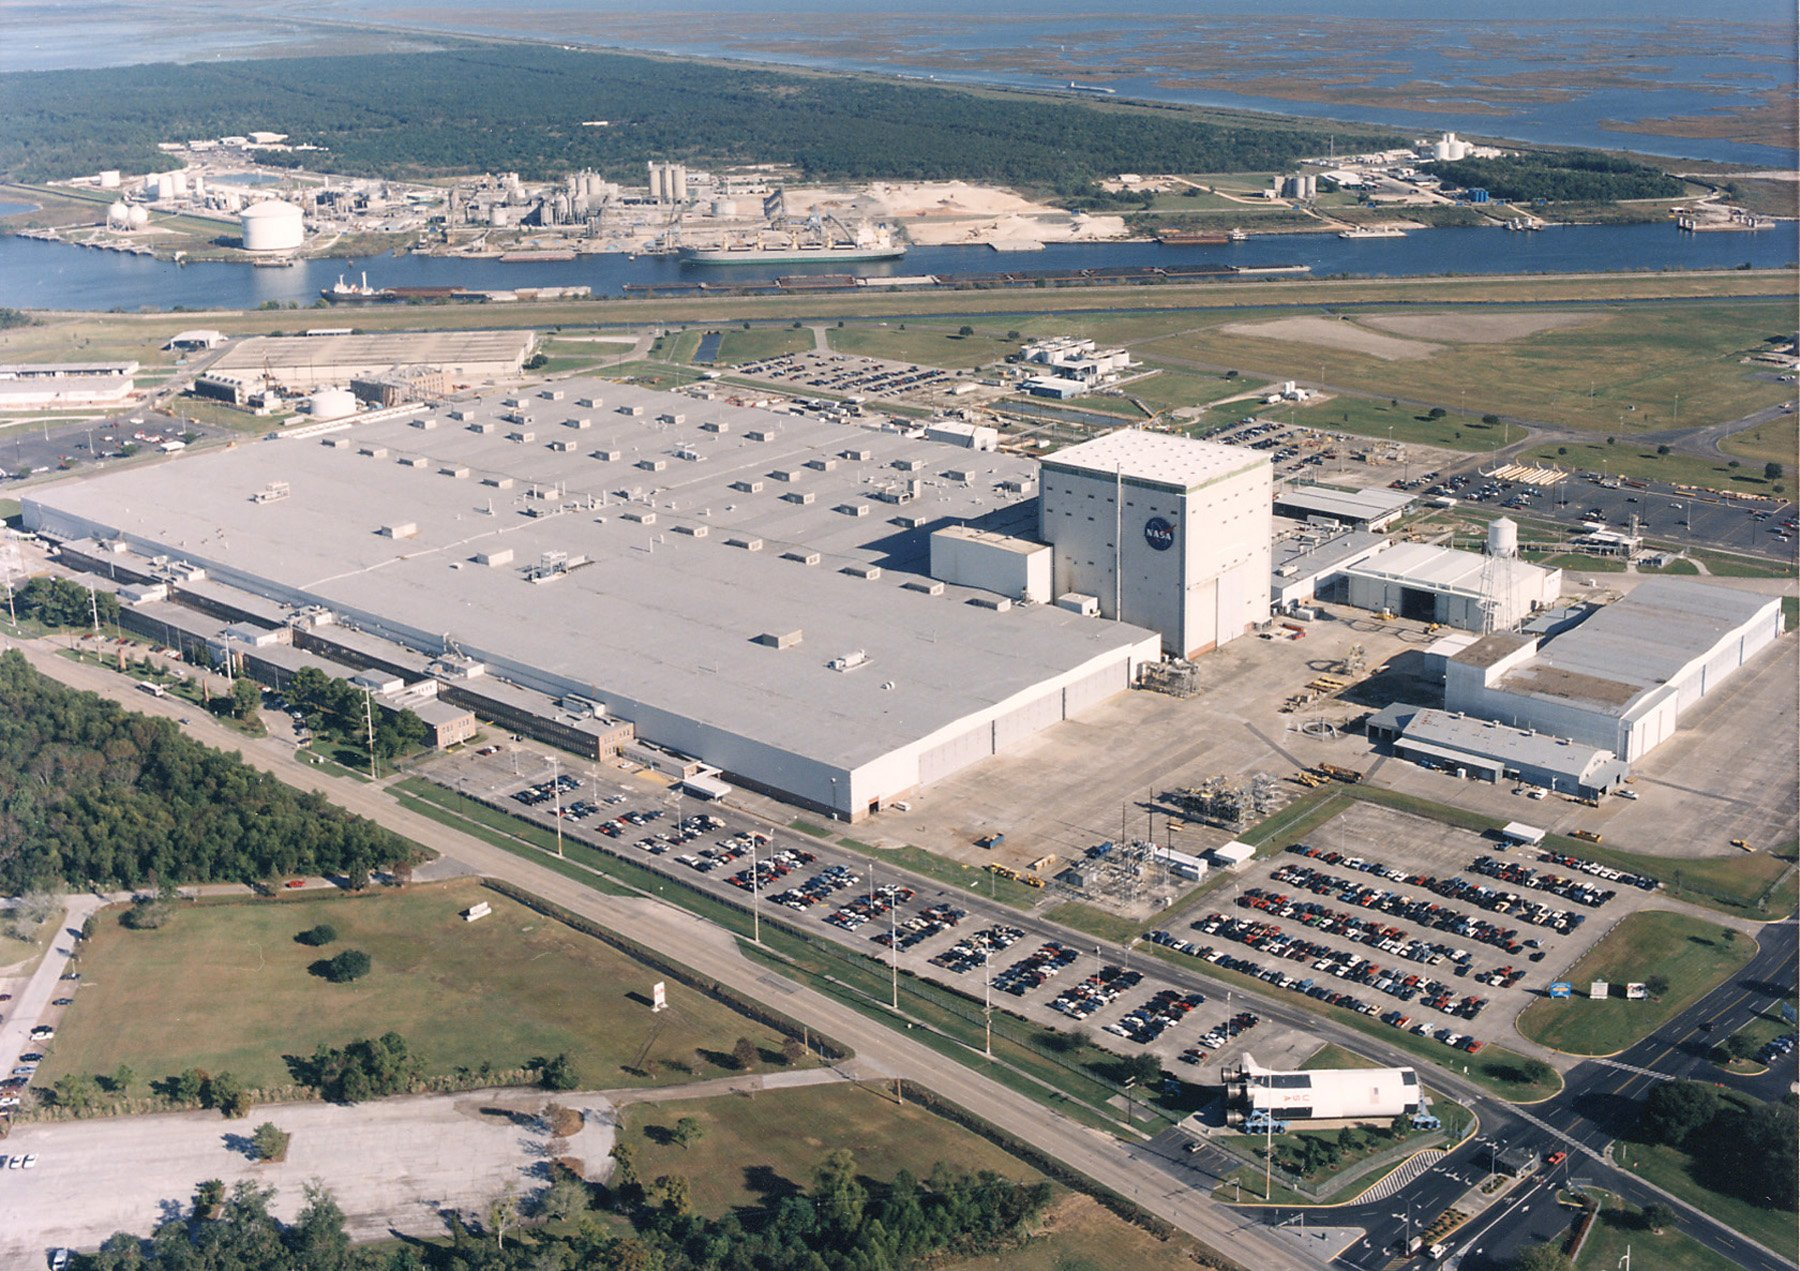 NASA - Aerial View of Michoud Assembly Facility